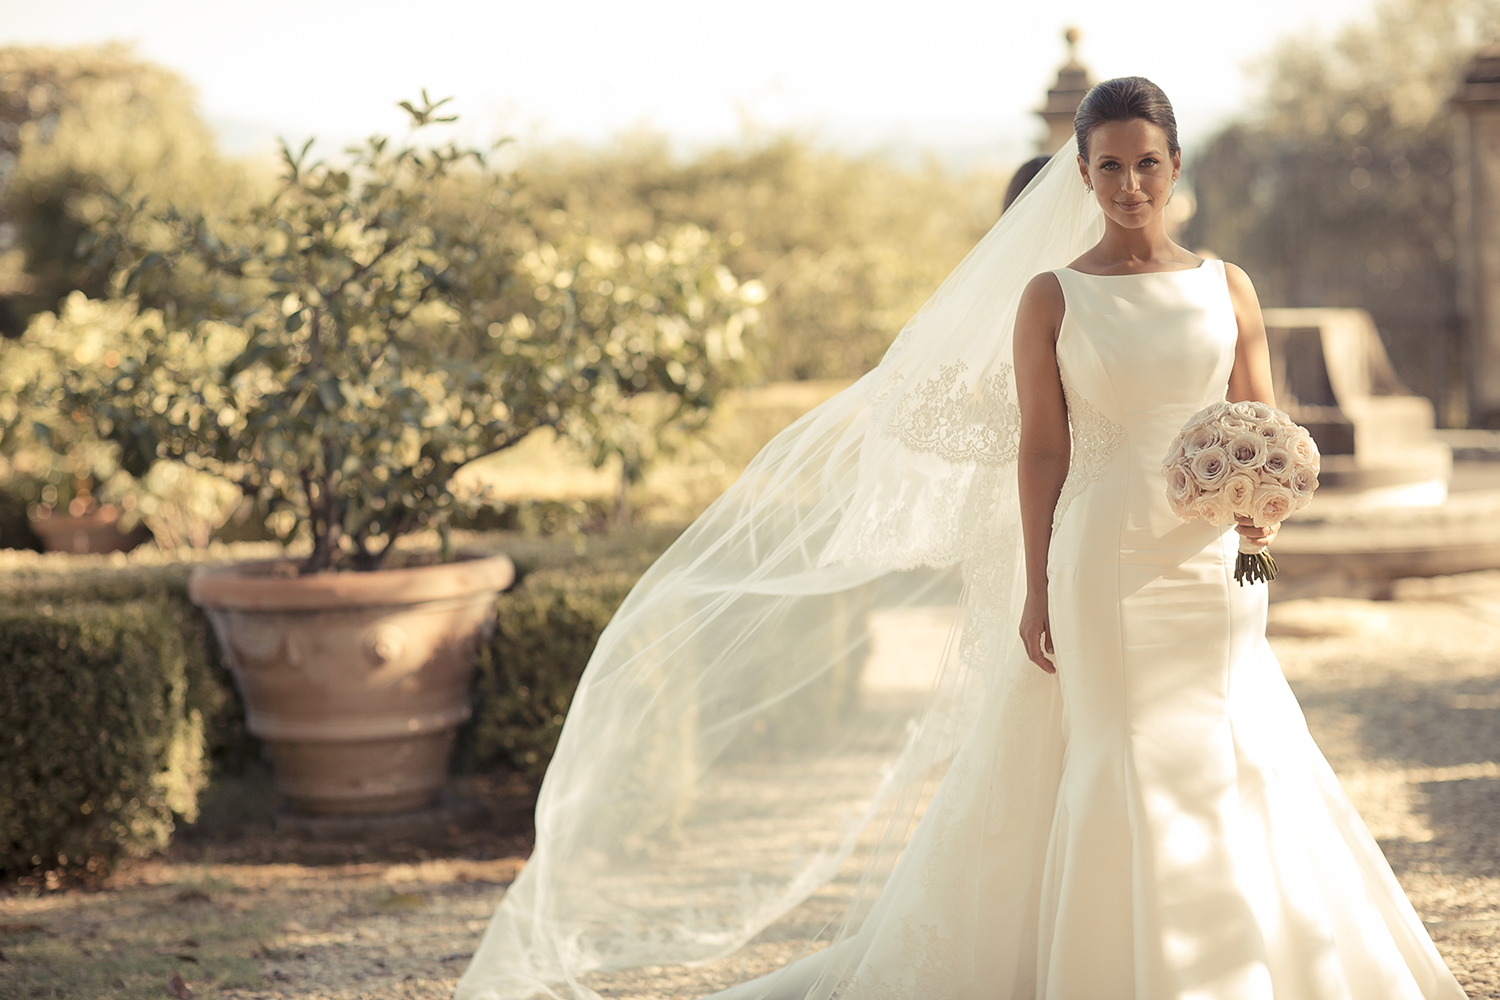 real brides Olivia Gold, wedding dresses by designer Suzanne Neville